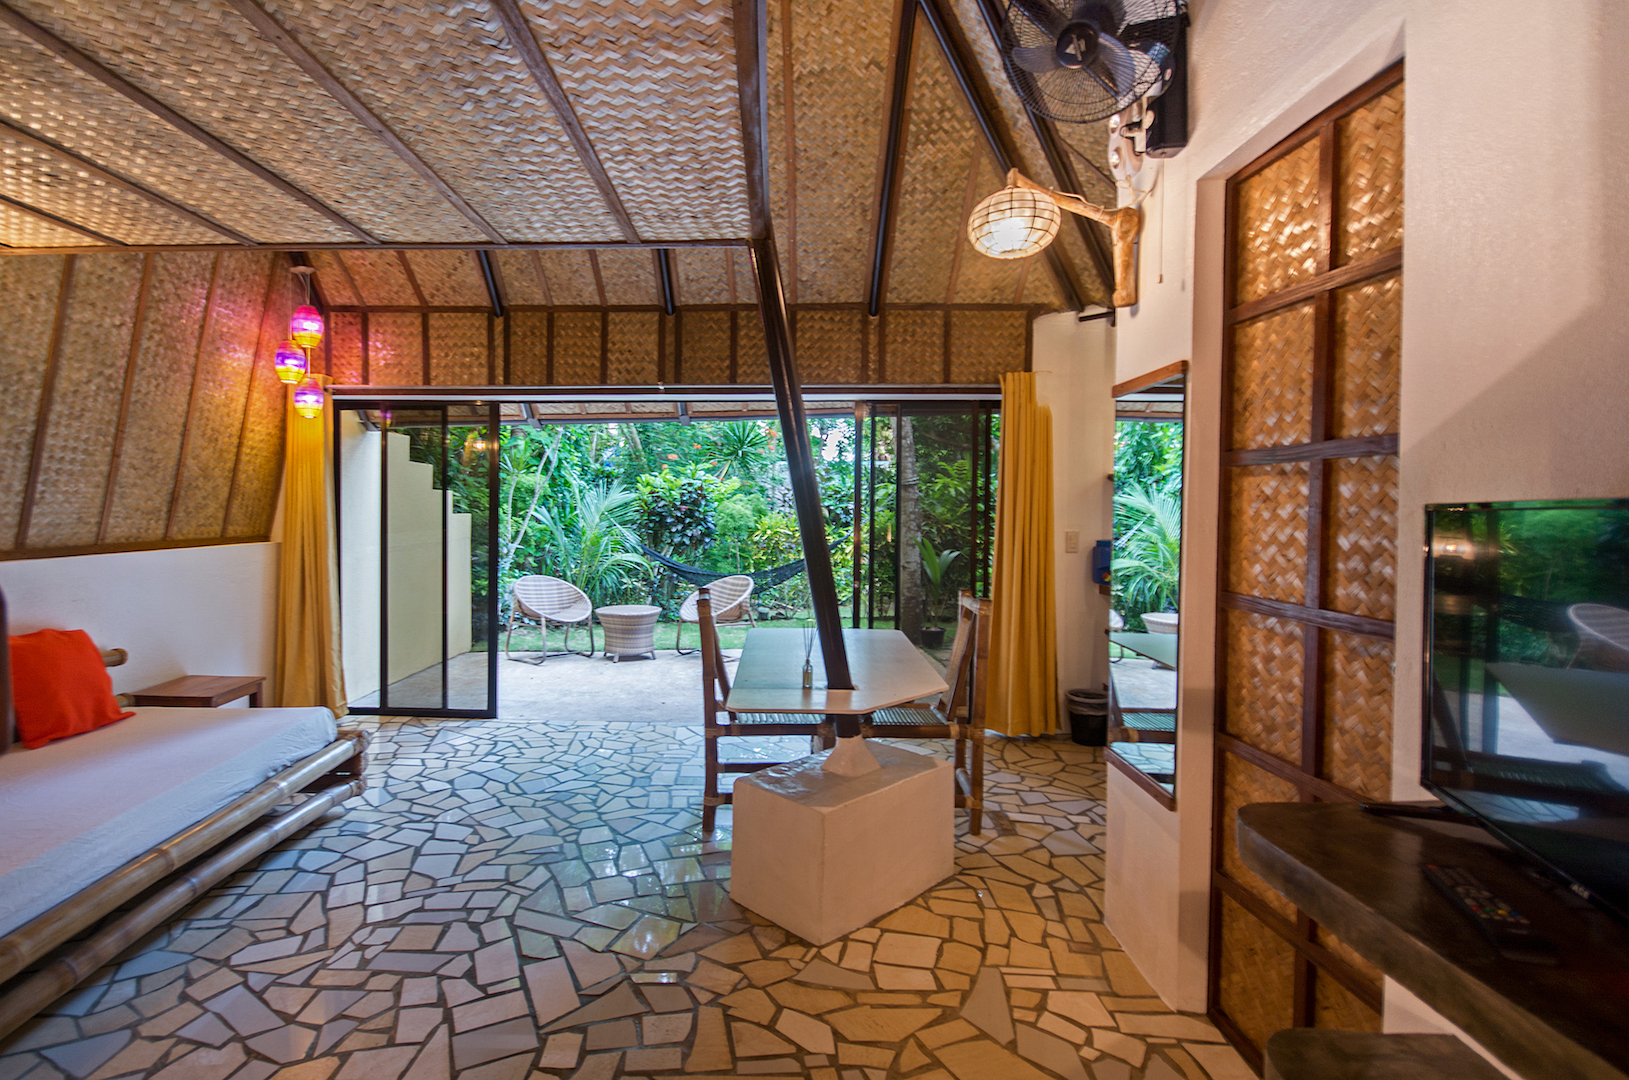 Bahay Kubo Native House In Ralph S Place Boracay Resorts For Rent In Boracay Island Aklan Philippines